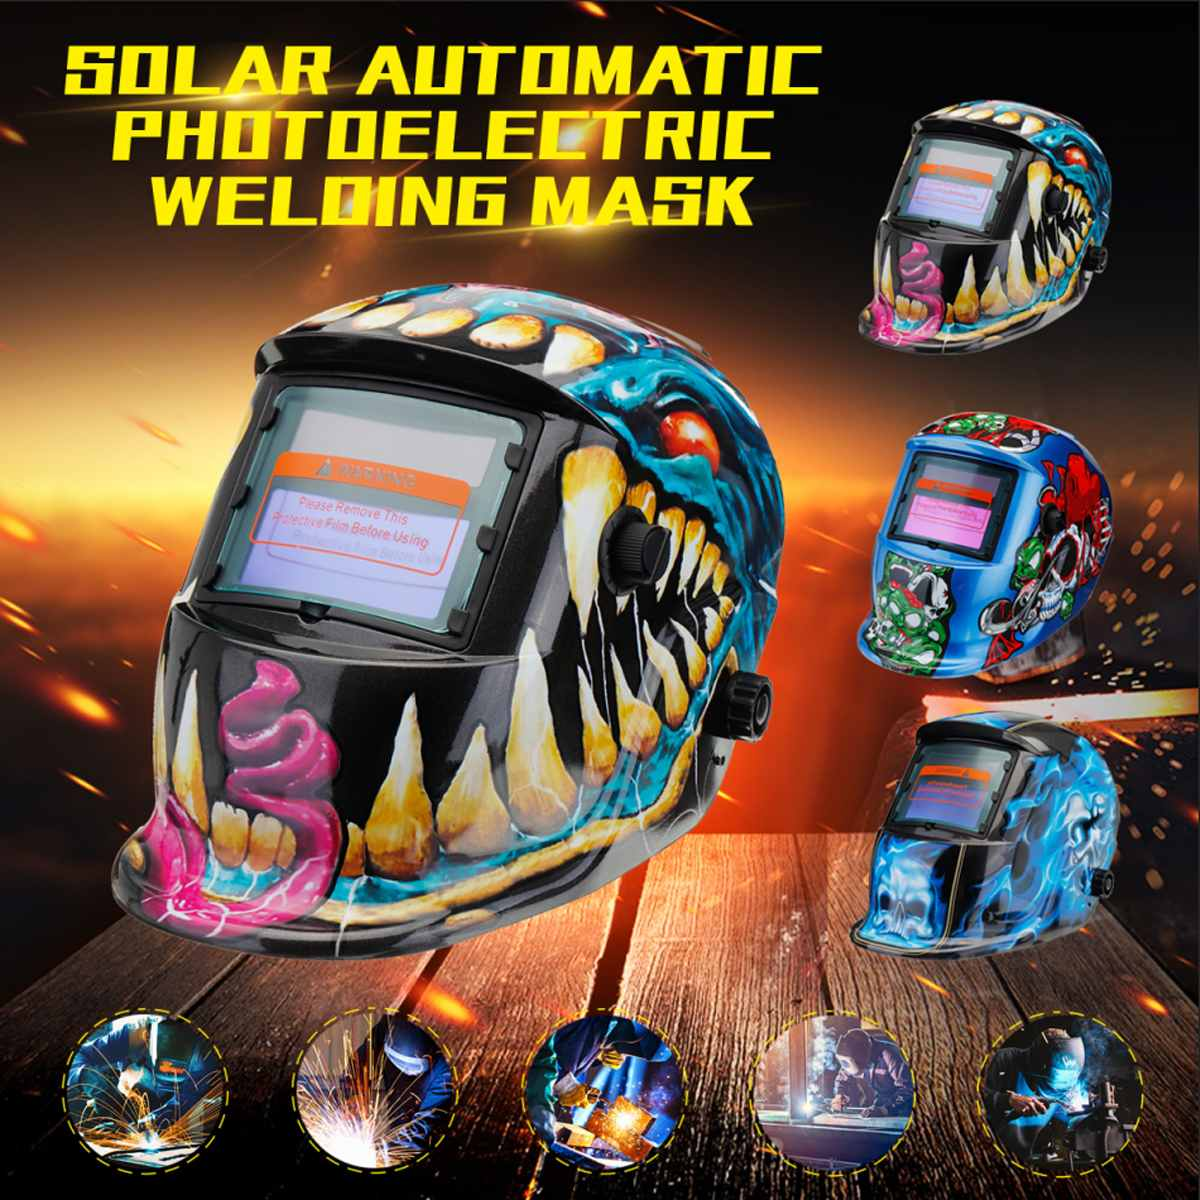 New Style Solar Automatic Photoelectric Welding Mask Helmet Welding Caps Solar Power Welding Helmets Adjustable HeadbandNew Style Solar Automatic Photoelectric Welding Mask Helmet Welding Caps Solar Power Welding Helmets Adjustable Headband